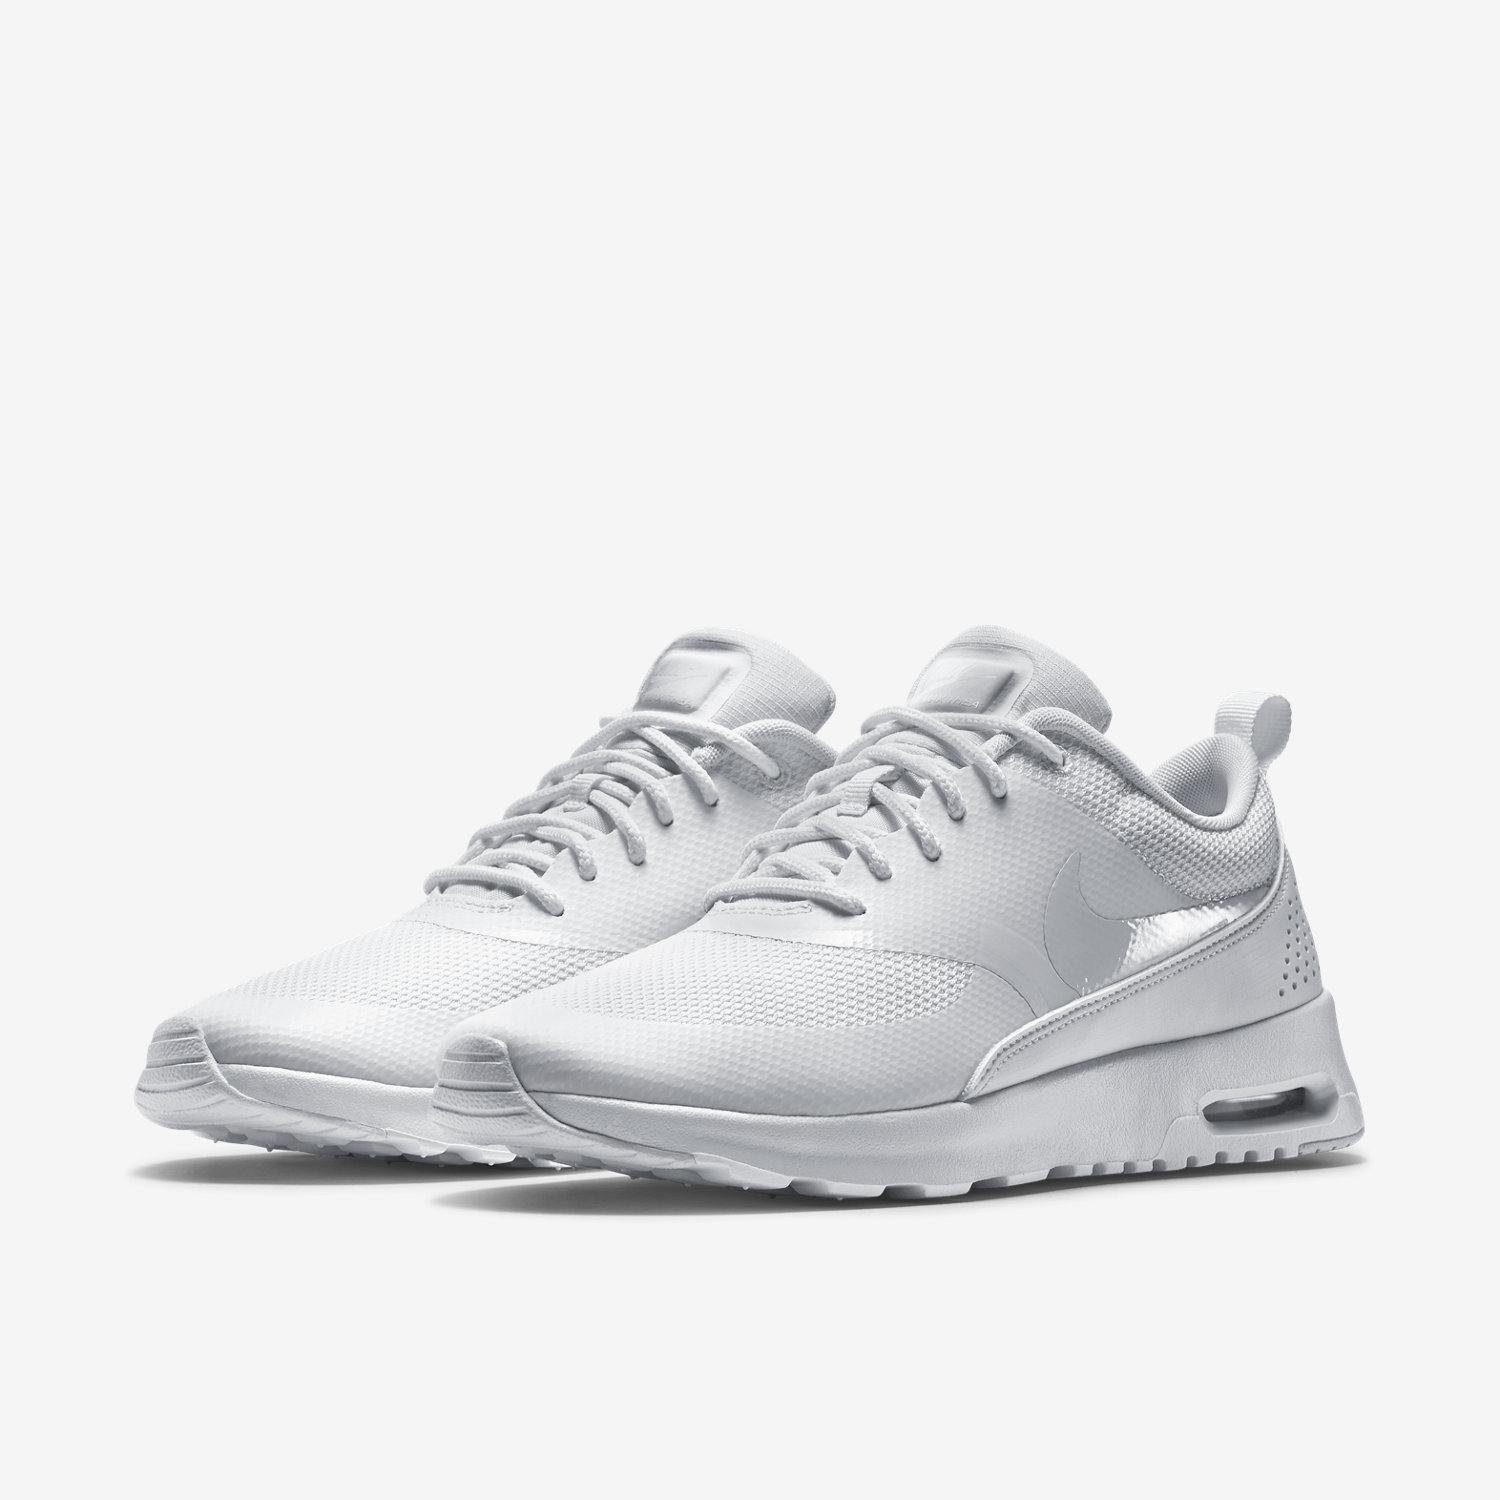 Nike Air Max Thea Metallic Sz 6 WMNS 819640 001